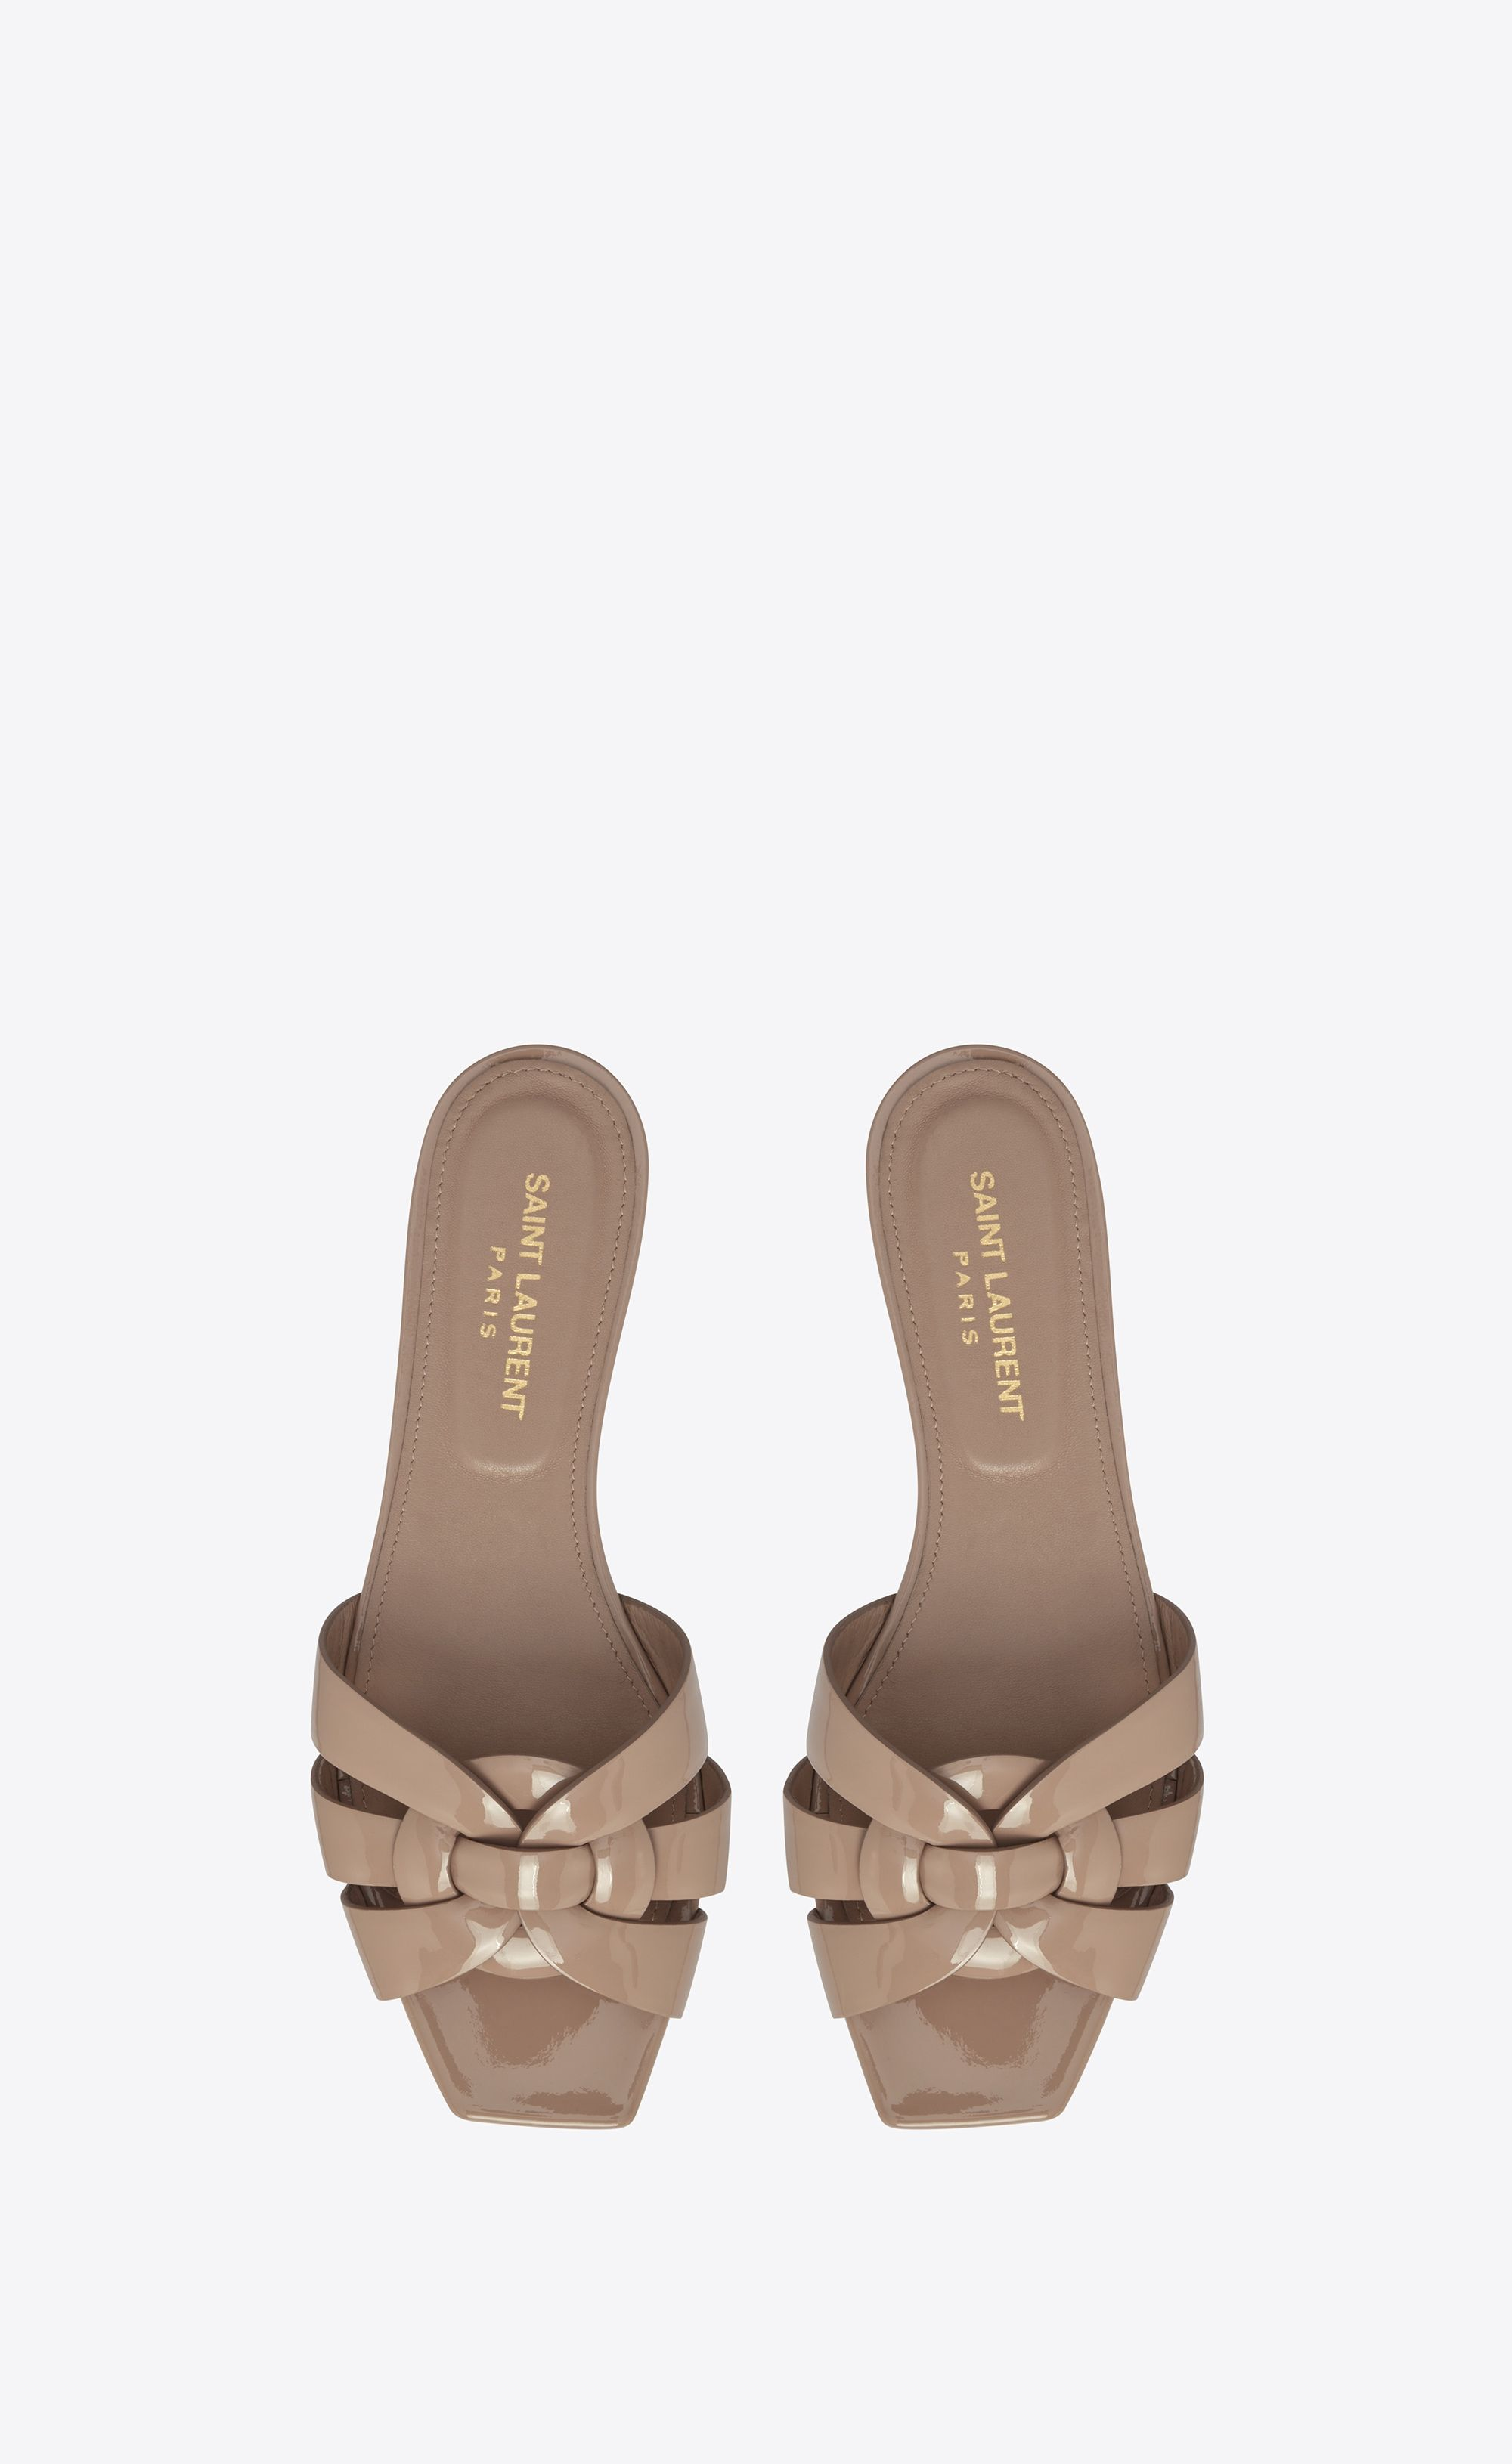 87f58683c23 Saint Laurent Nu Pieds 05 Sandal Tribute In Beige Rosé Patent Leather